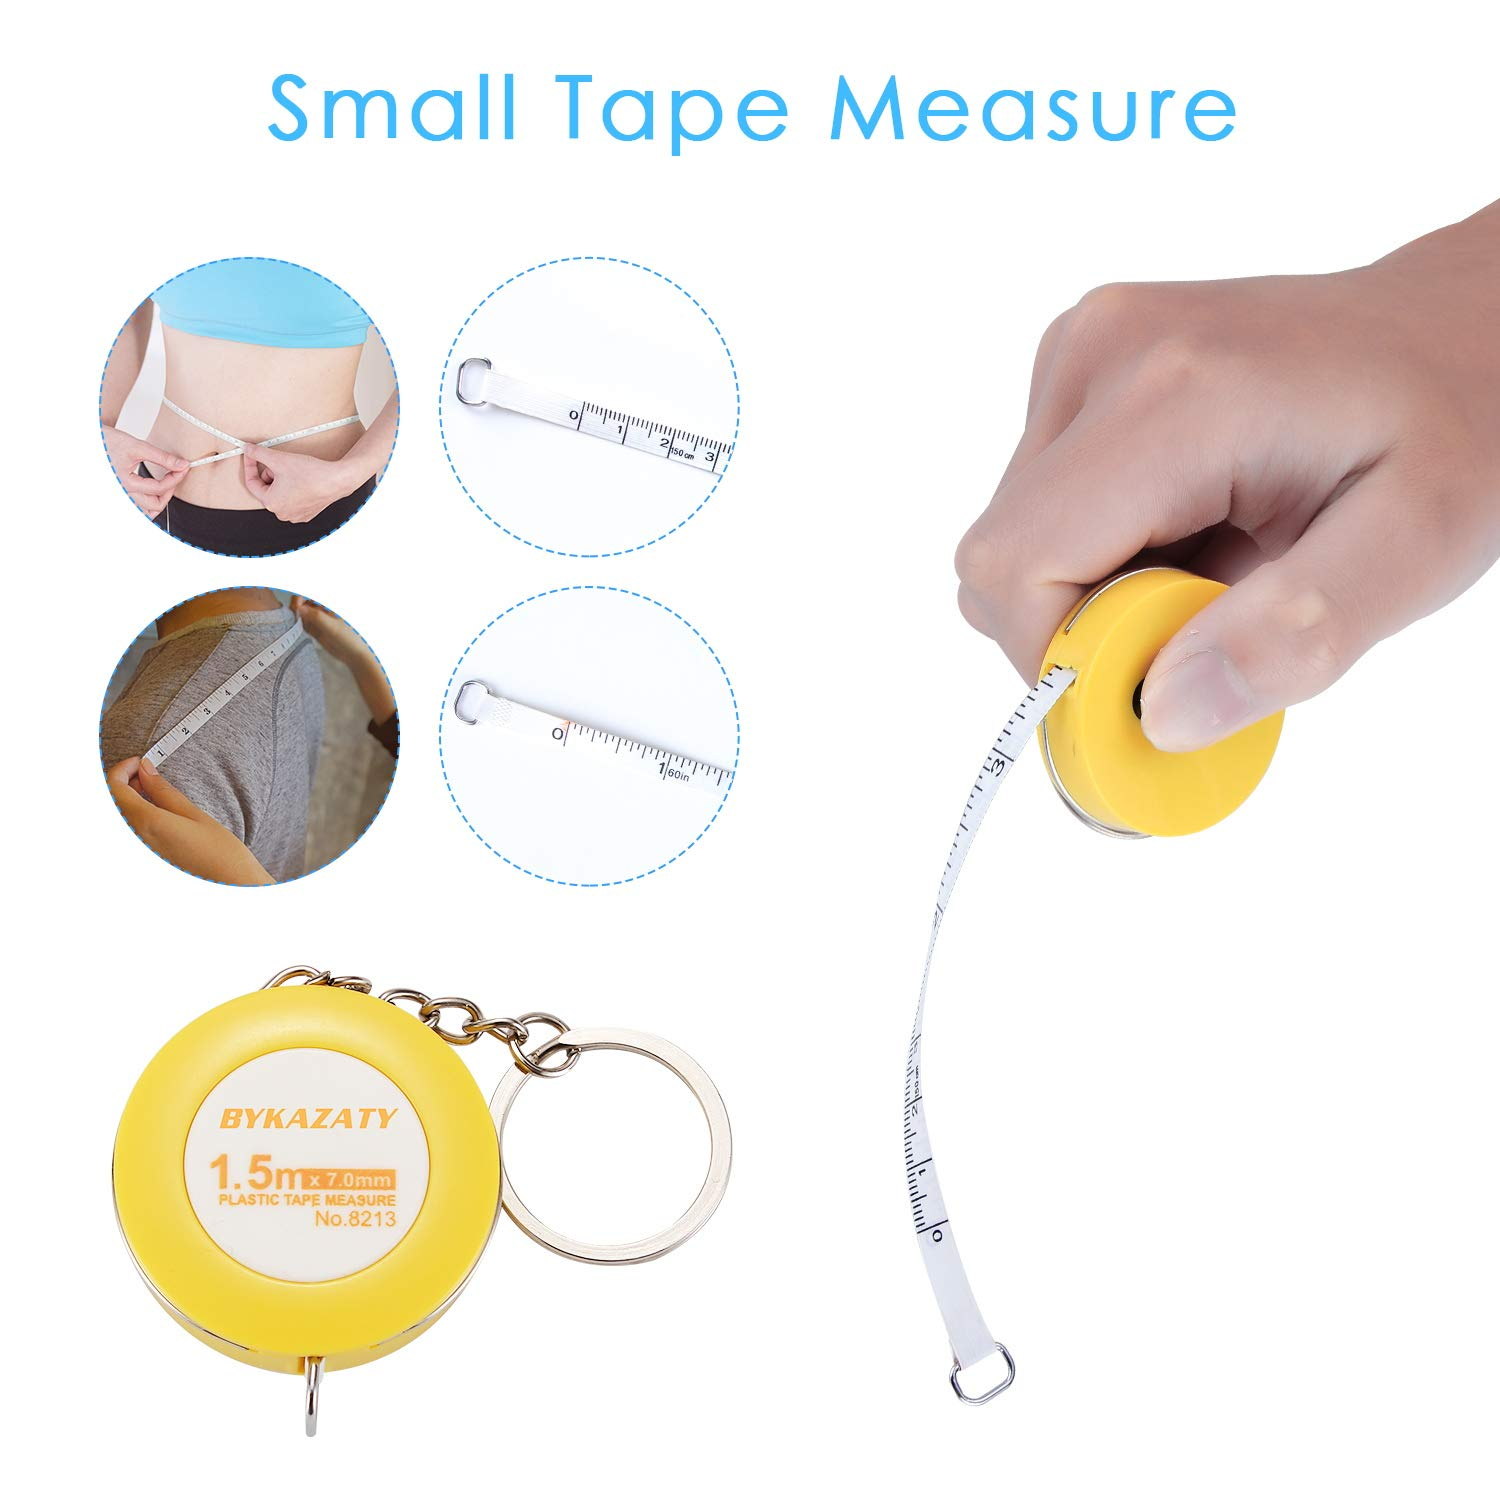 BYKAZATY Pet Scale with Tape Measure, Multi-Function Baby Scale, Infant Scale Digital Weight with Height Tray(Max: 70cm), Measure Weight Accurately(Max: 220lb), Perfect for Toddler/Puppy/Cat/Dog/Adult by BYKAZATY (Image #6)